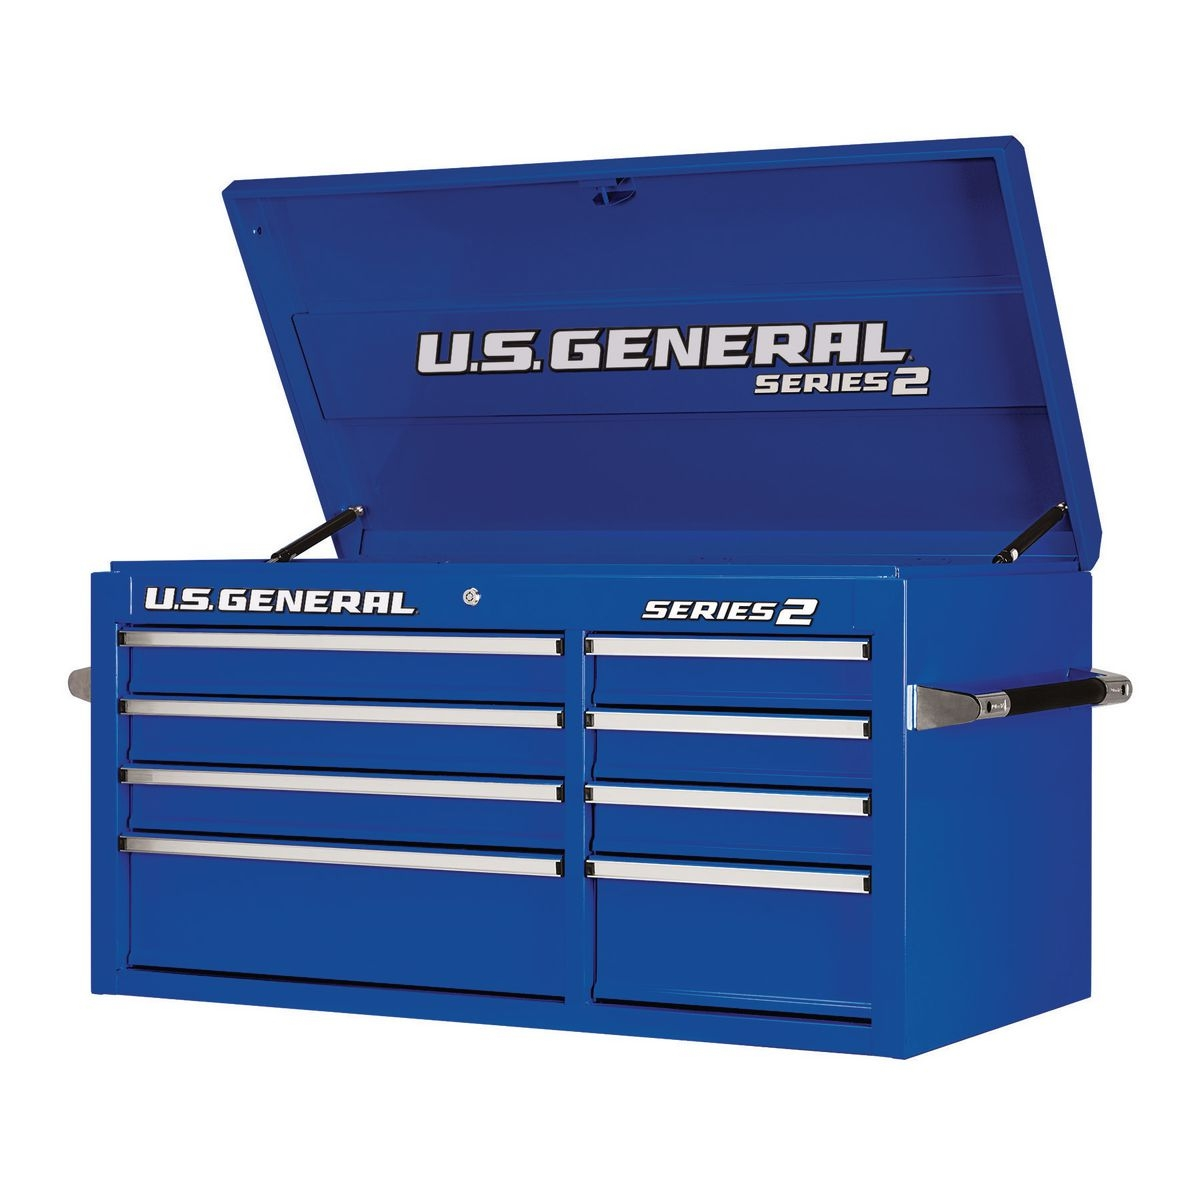 U.S. GENERAL 44 in. Double Bank Blue Top Chest - Item 64440 / 64438 / 64439